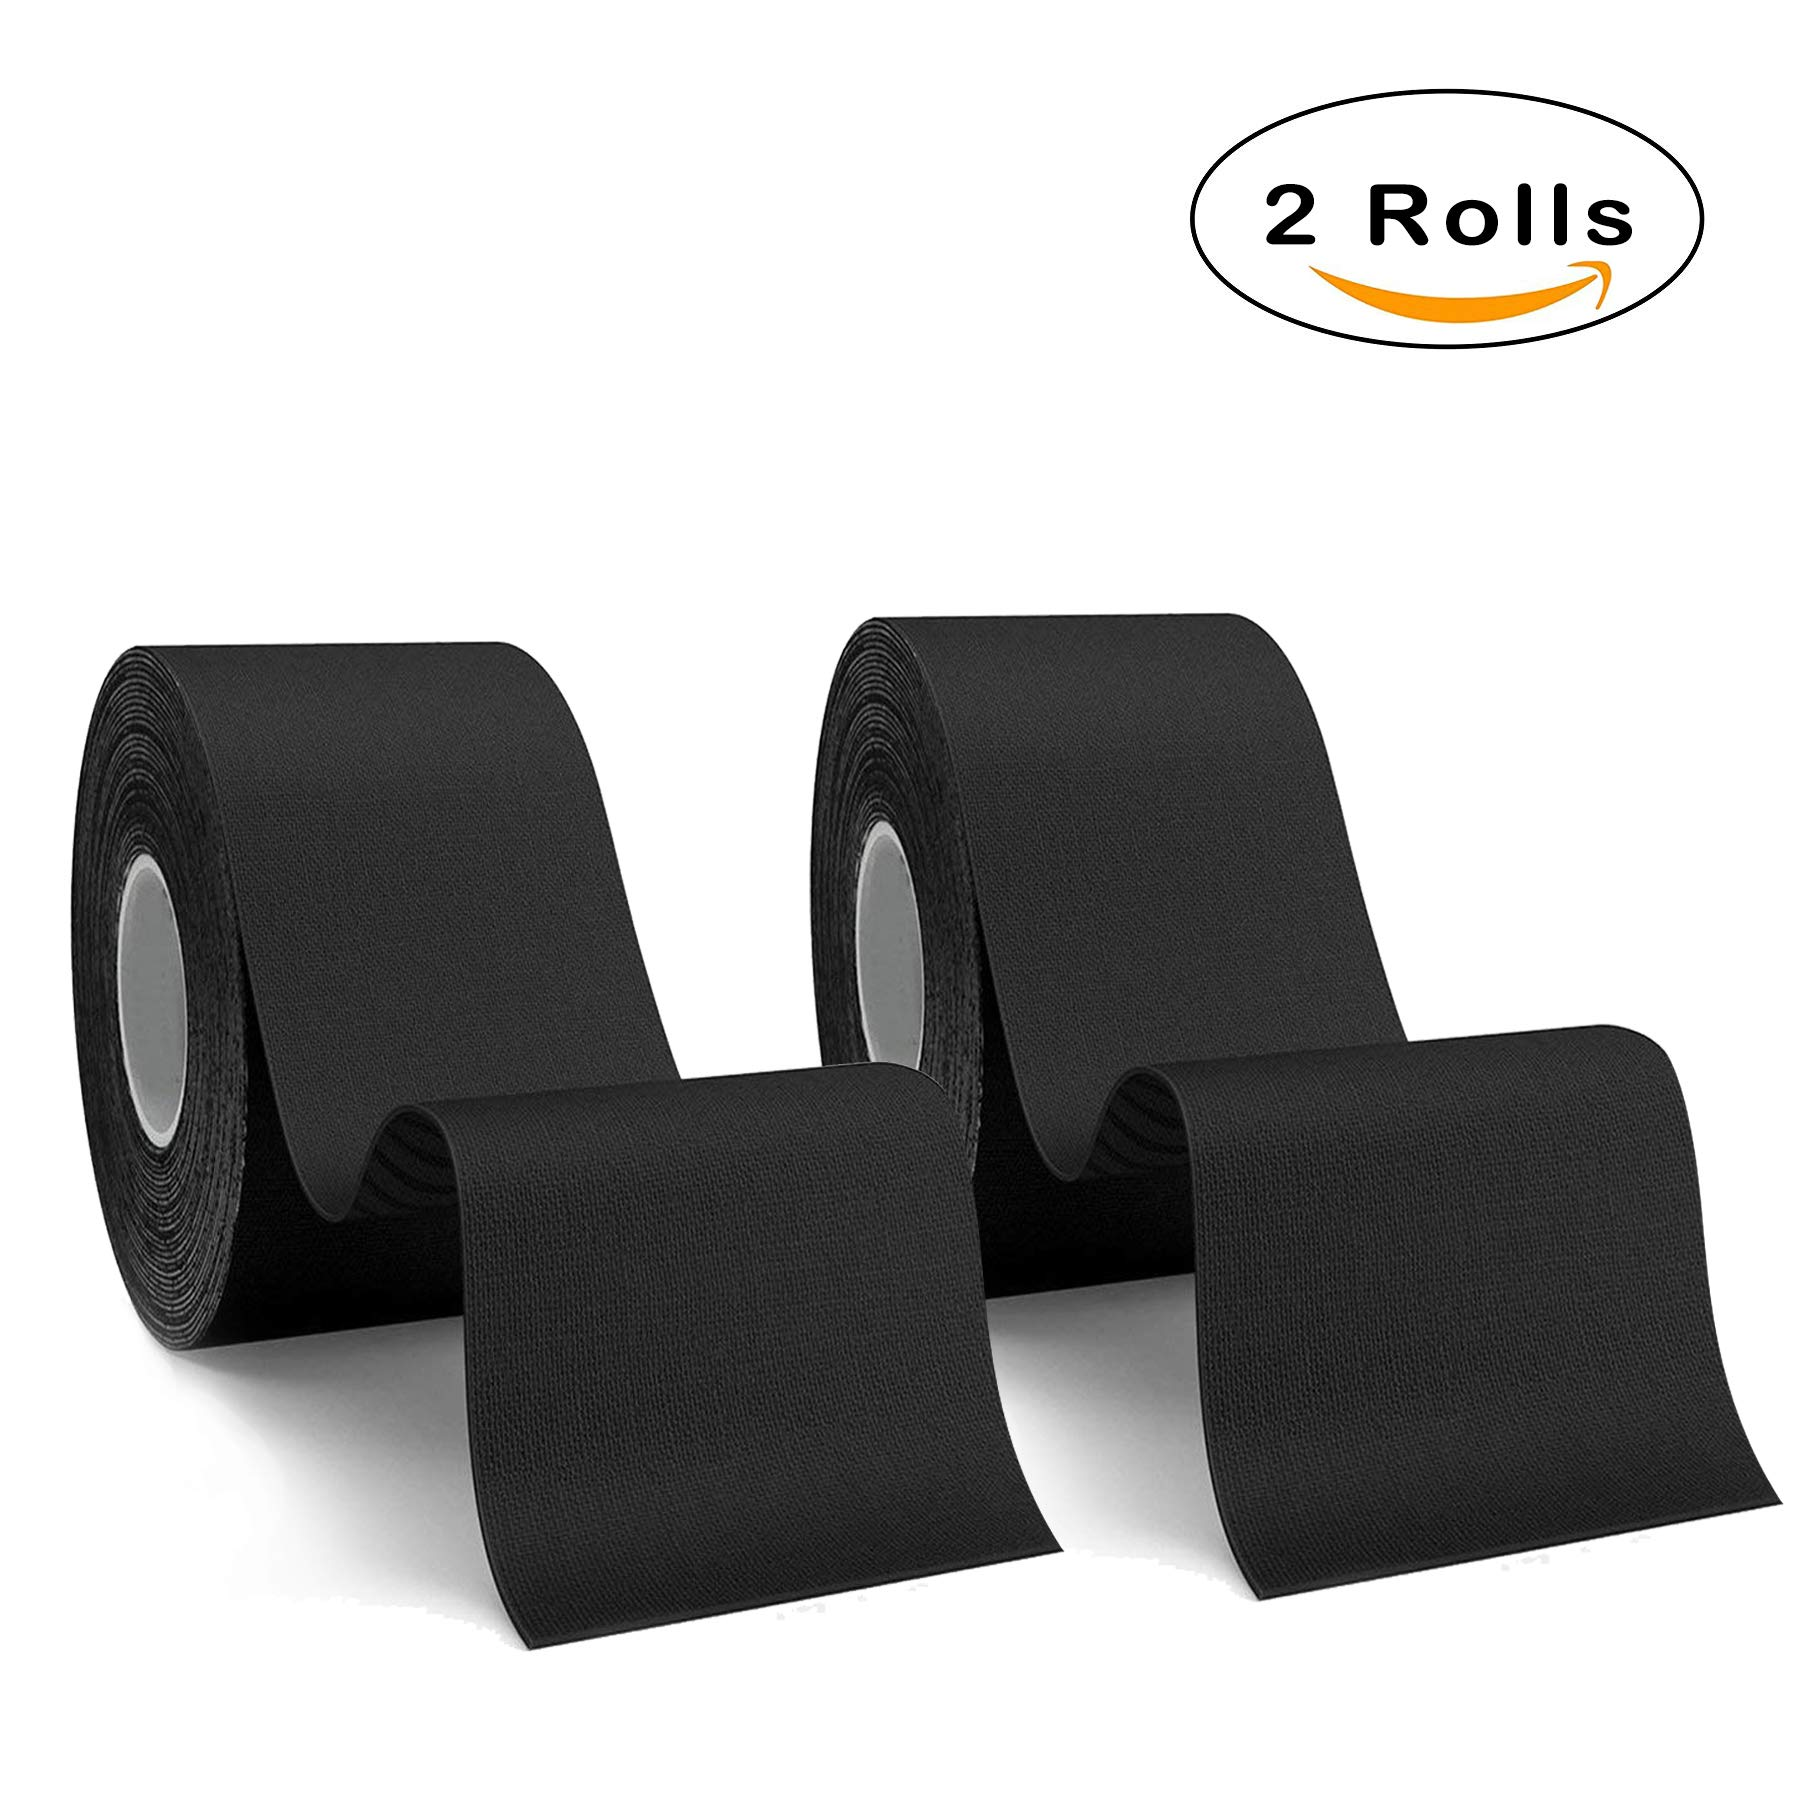 Kinesiology Tape Muscle Support Adhesive Tape 2 Rolls Pack Elastic Therapeutic Sports Tape for Knee Wrist Shoulder Elbow,Waterproof,Breathable,2''*2'' per Poll (Black)